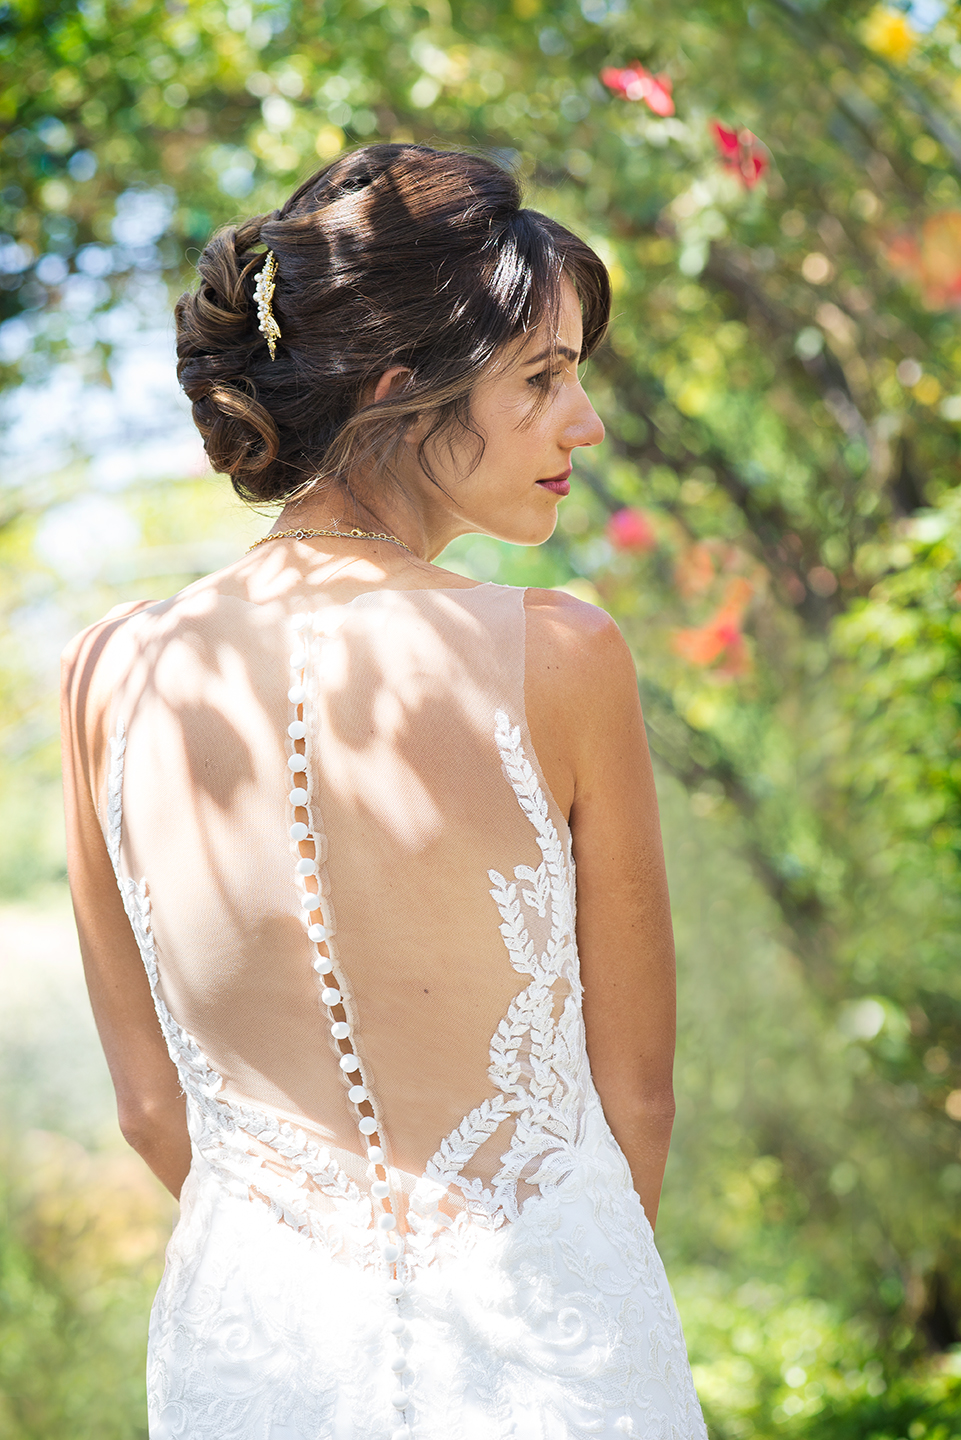 Okay, Dana -  You are simply stunning XD. I also loved the way the leaves made their own pattern on the back of her dress, mirroring the lace detail :)